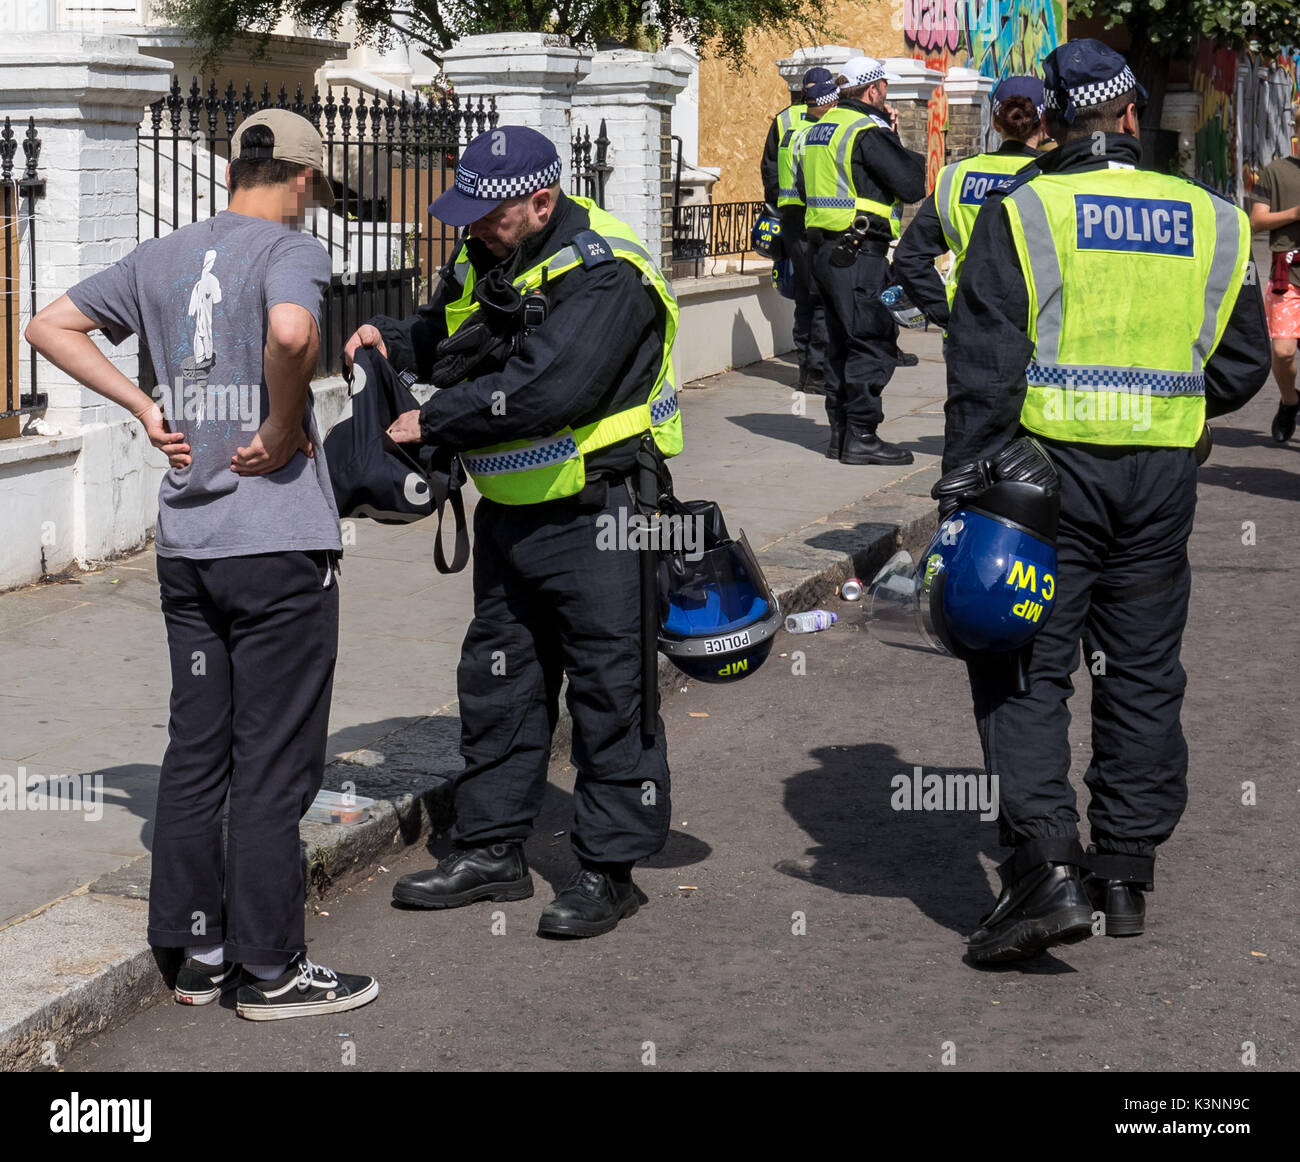 London, UK. 28th August 2017. Police perform stop and search on suspects during Notting Hill Carnival 2017© Guy Corbishley / Alamy Live News - Stock Image